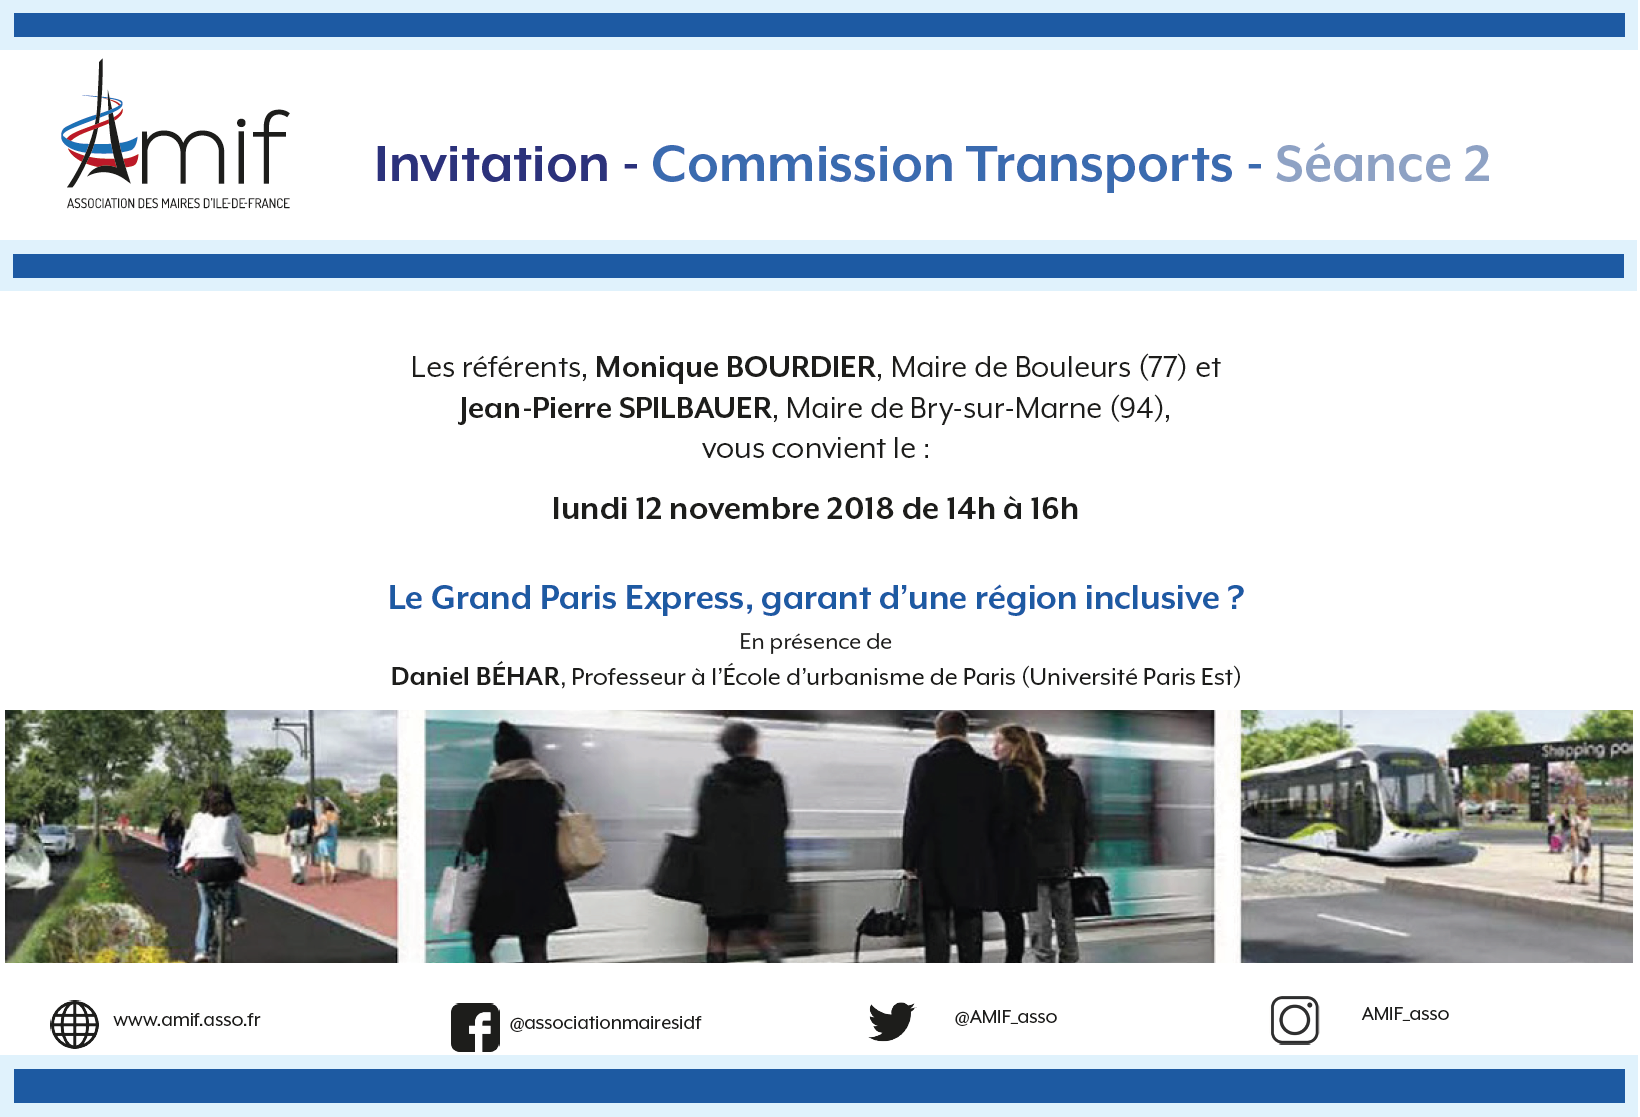 CommissionTransportsSeance212novembre2018v4